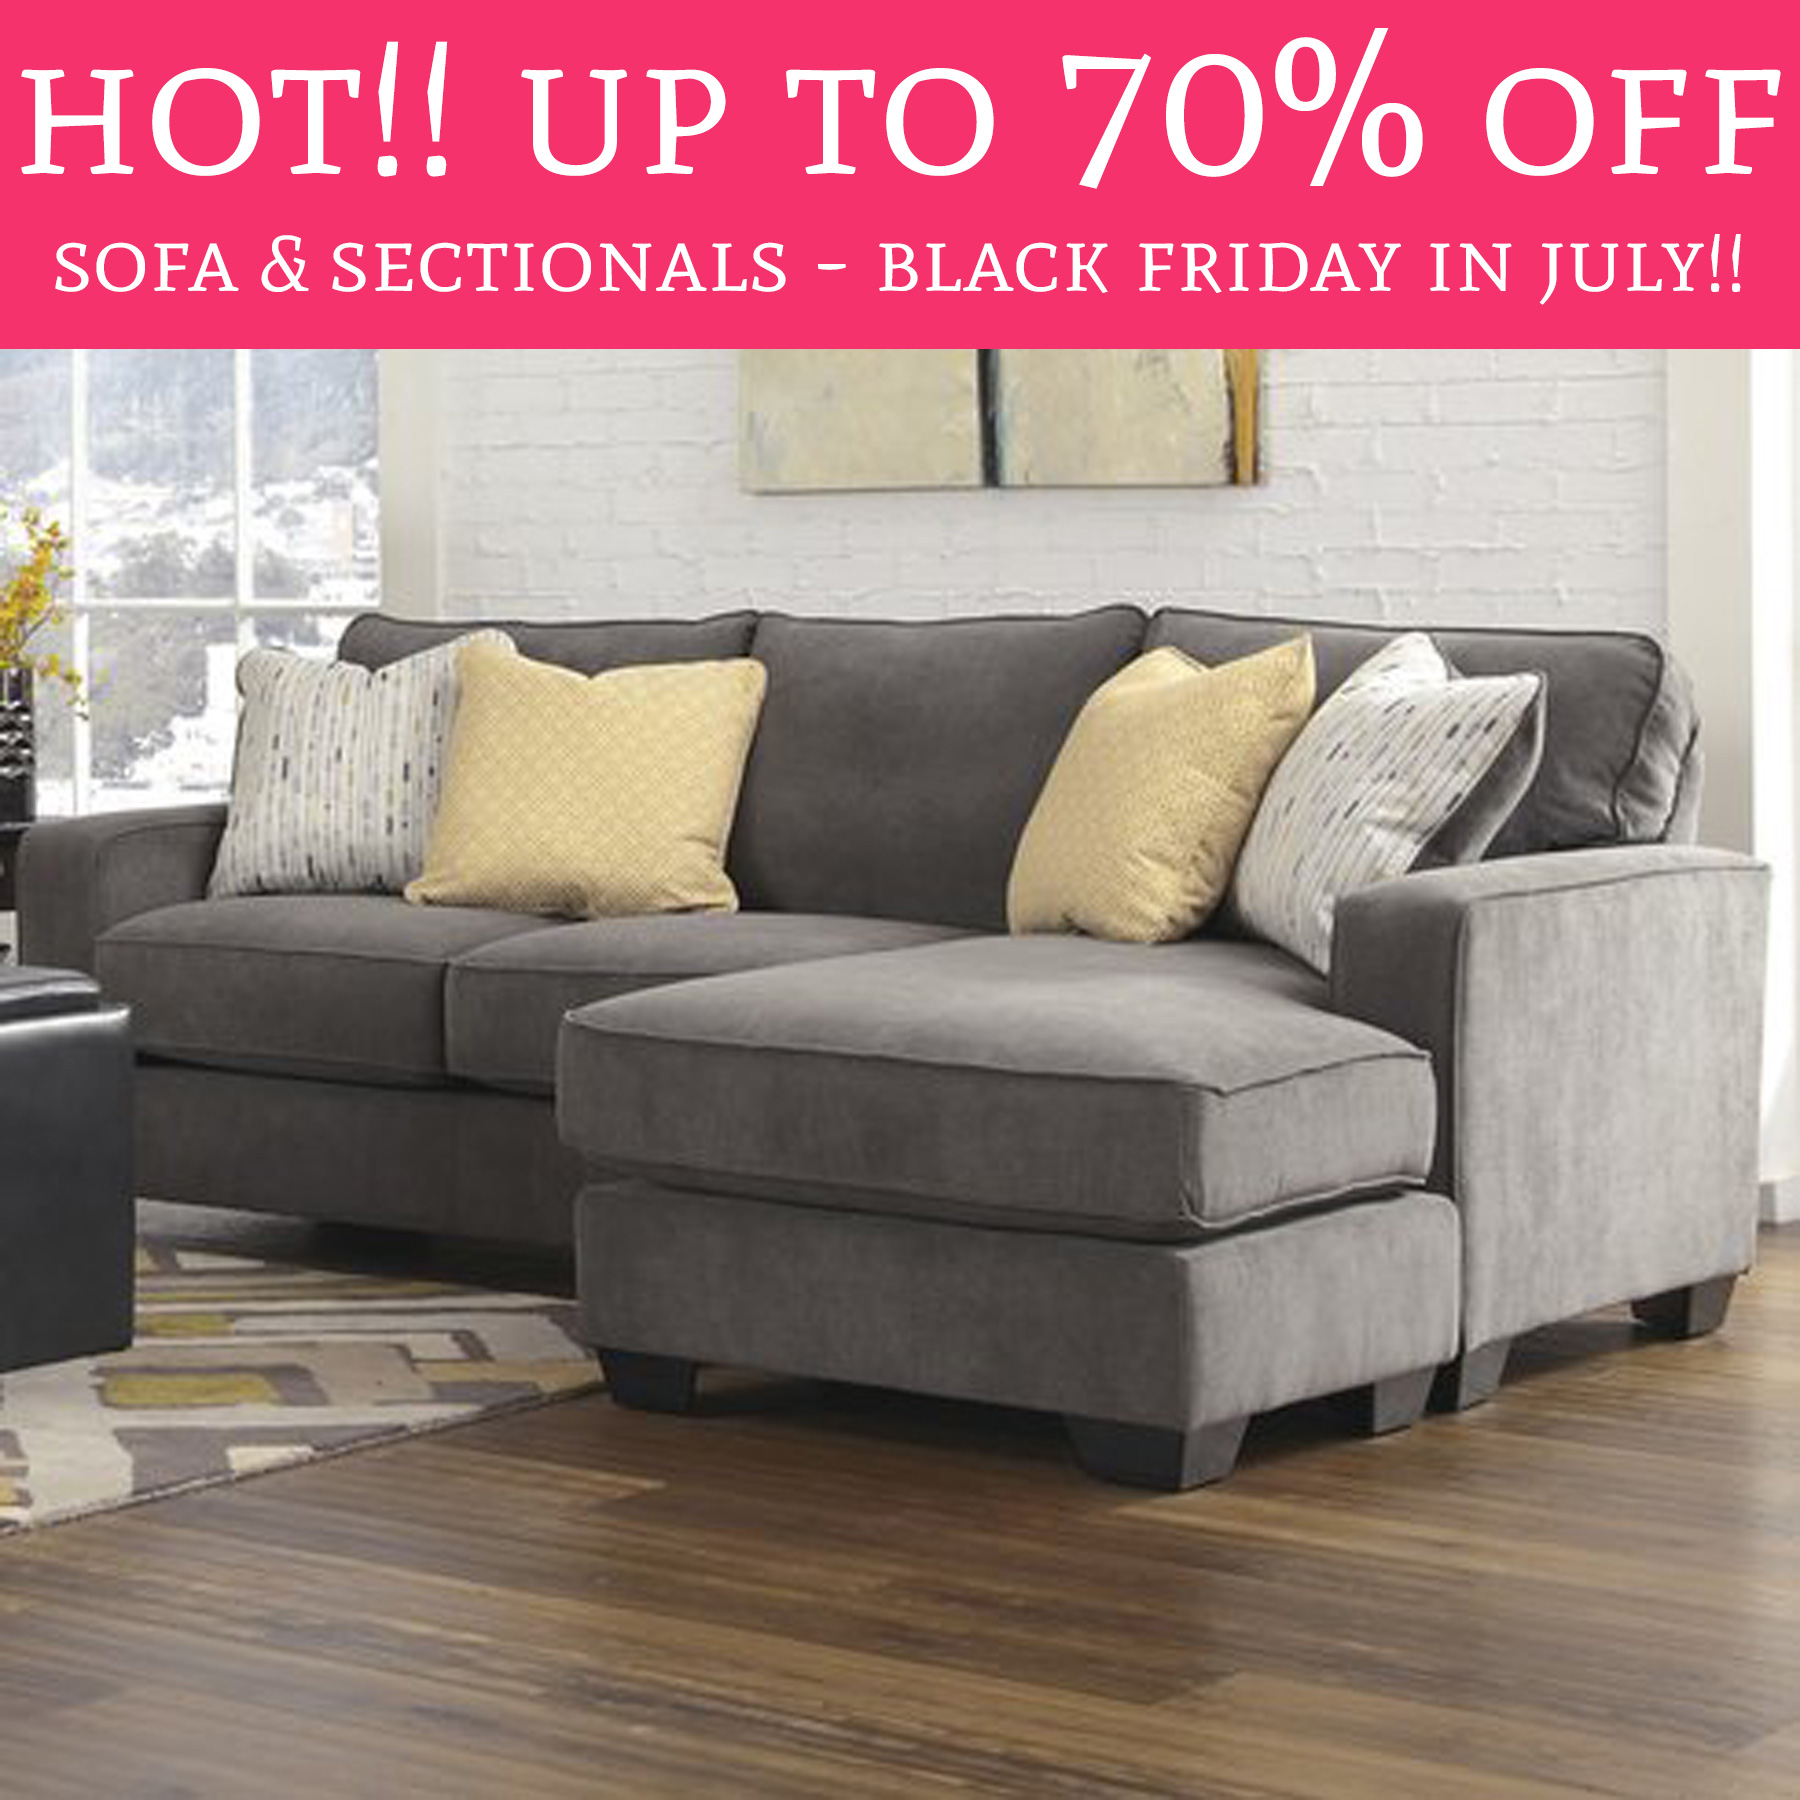 Black Friday Couch Deals: HOT!! Black Friday In July